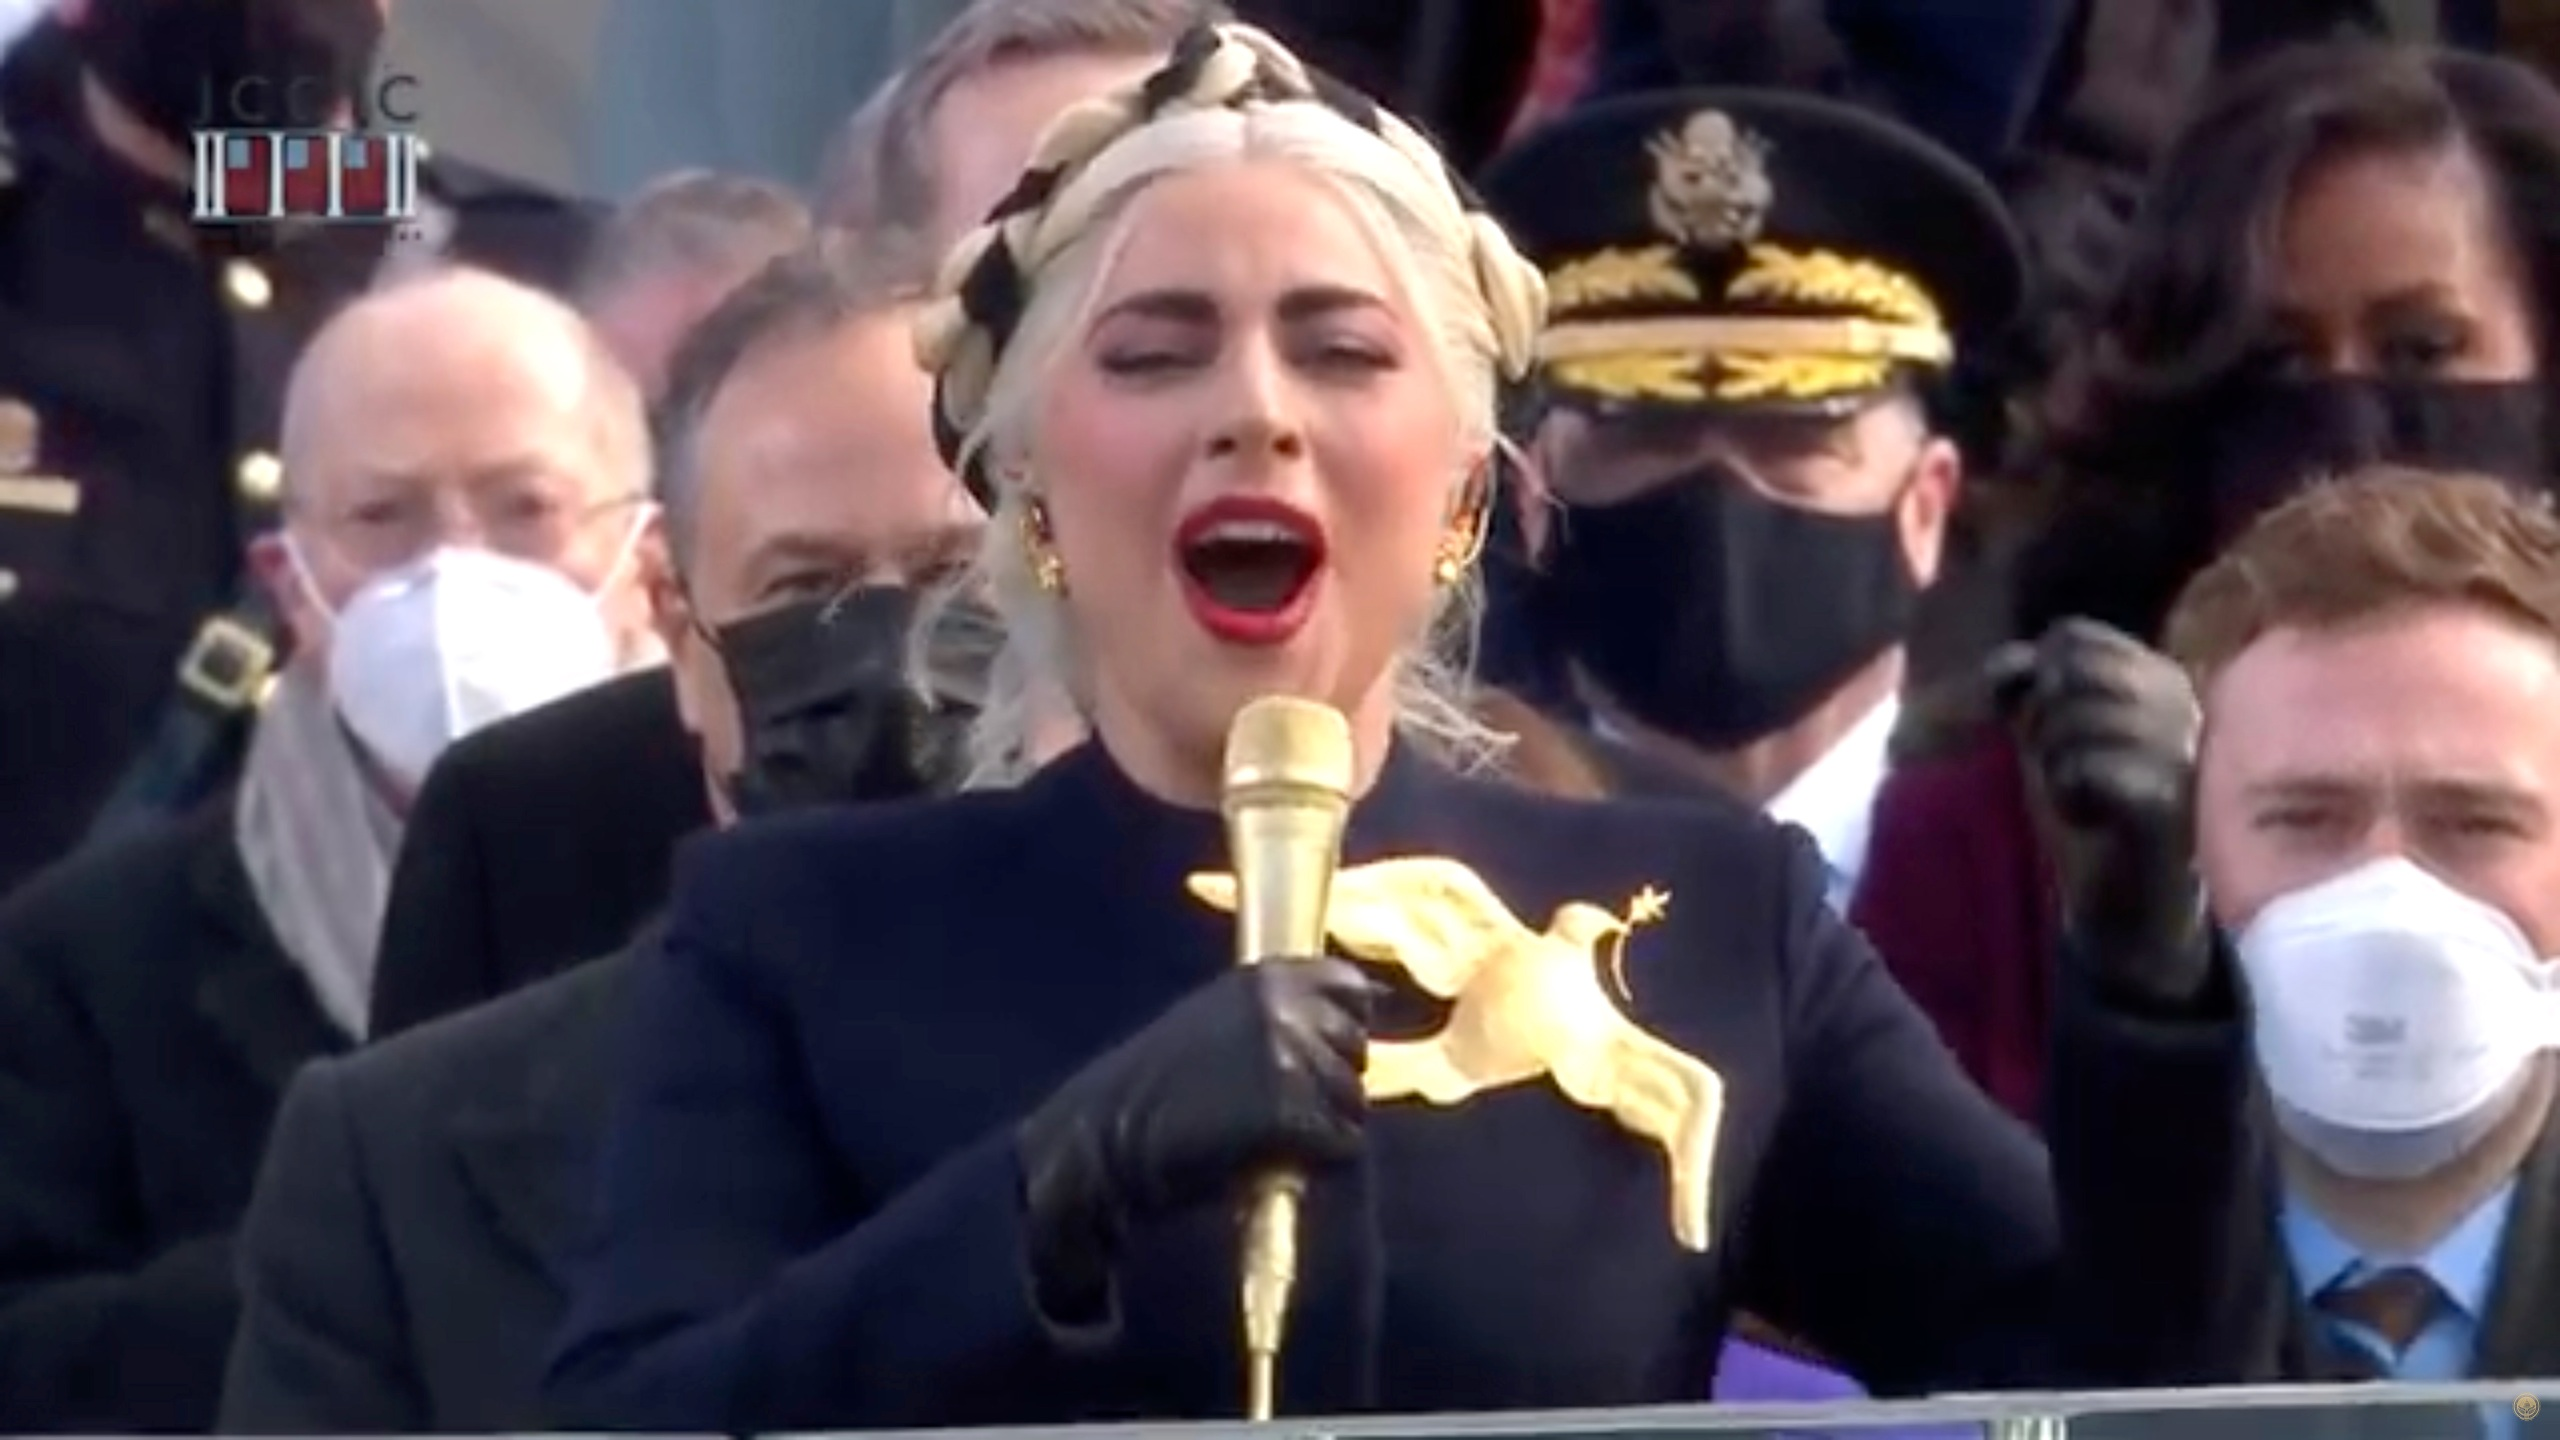 In this screengrab, Lady Gaga sings the National Anthem at the inauguration of U.S. President-elect Joe Biden on the West Front of the U.S. Capitol on January 20, 2021 in Washington, DC. (Handout/Biden Inaugural Committee via Getty Images )